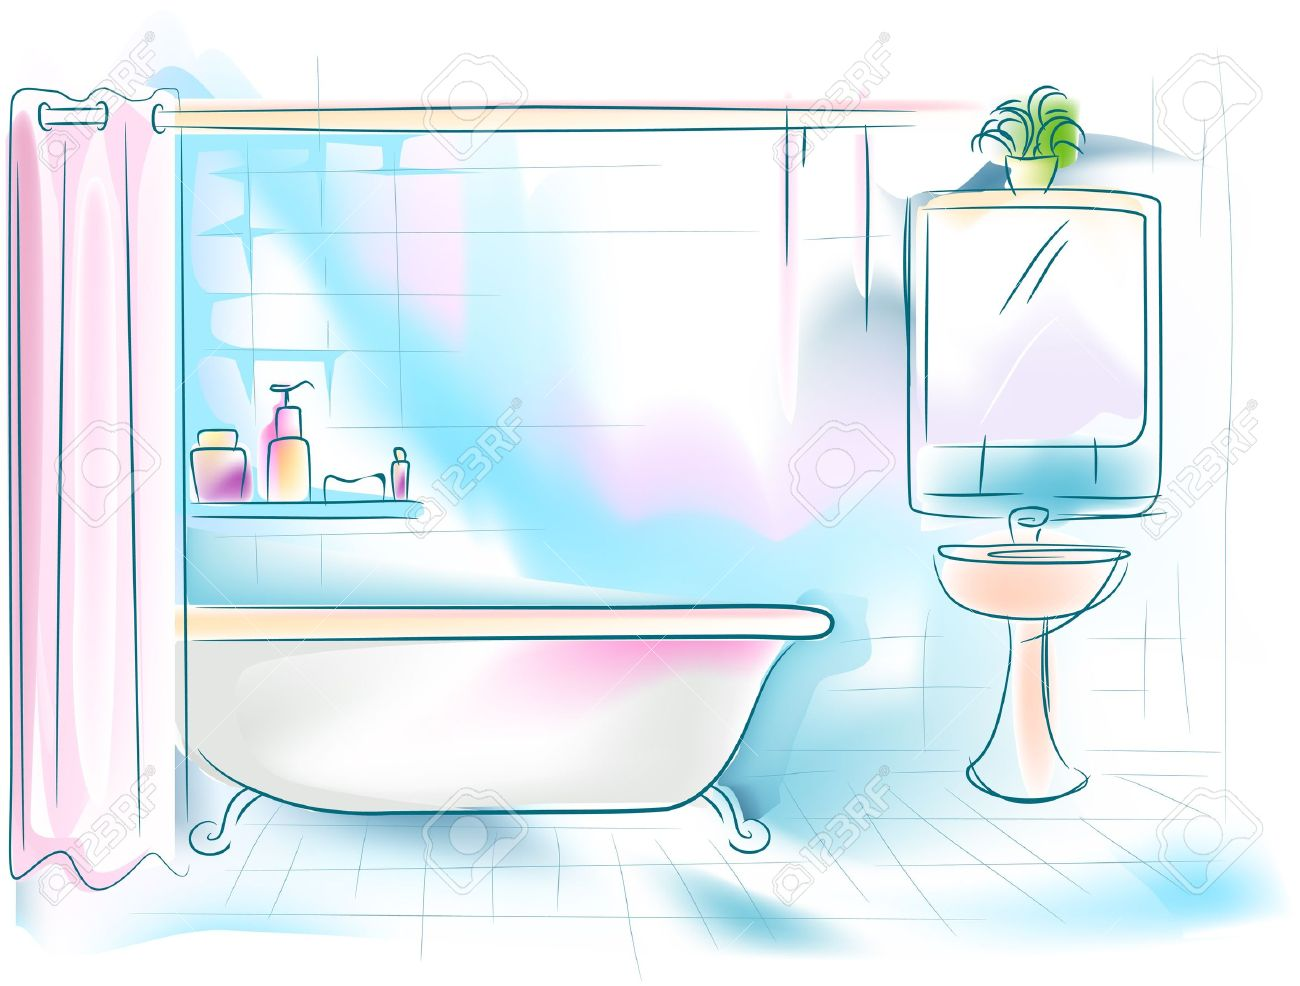 Bathroom pictures clipart clipart black and white stock Bathroom clipart 2 - Cliparting.com clipart black and white stock